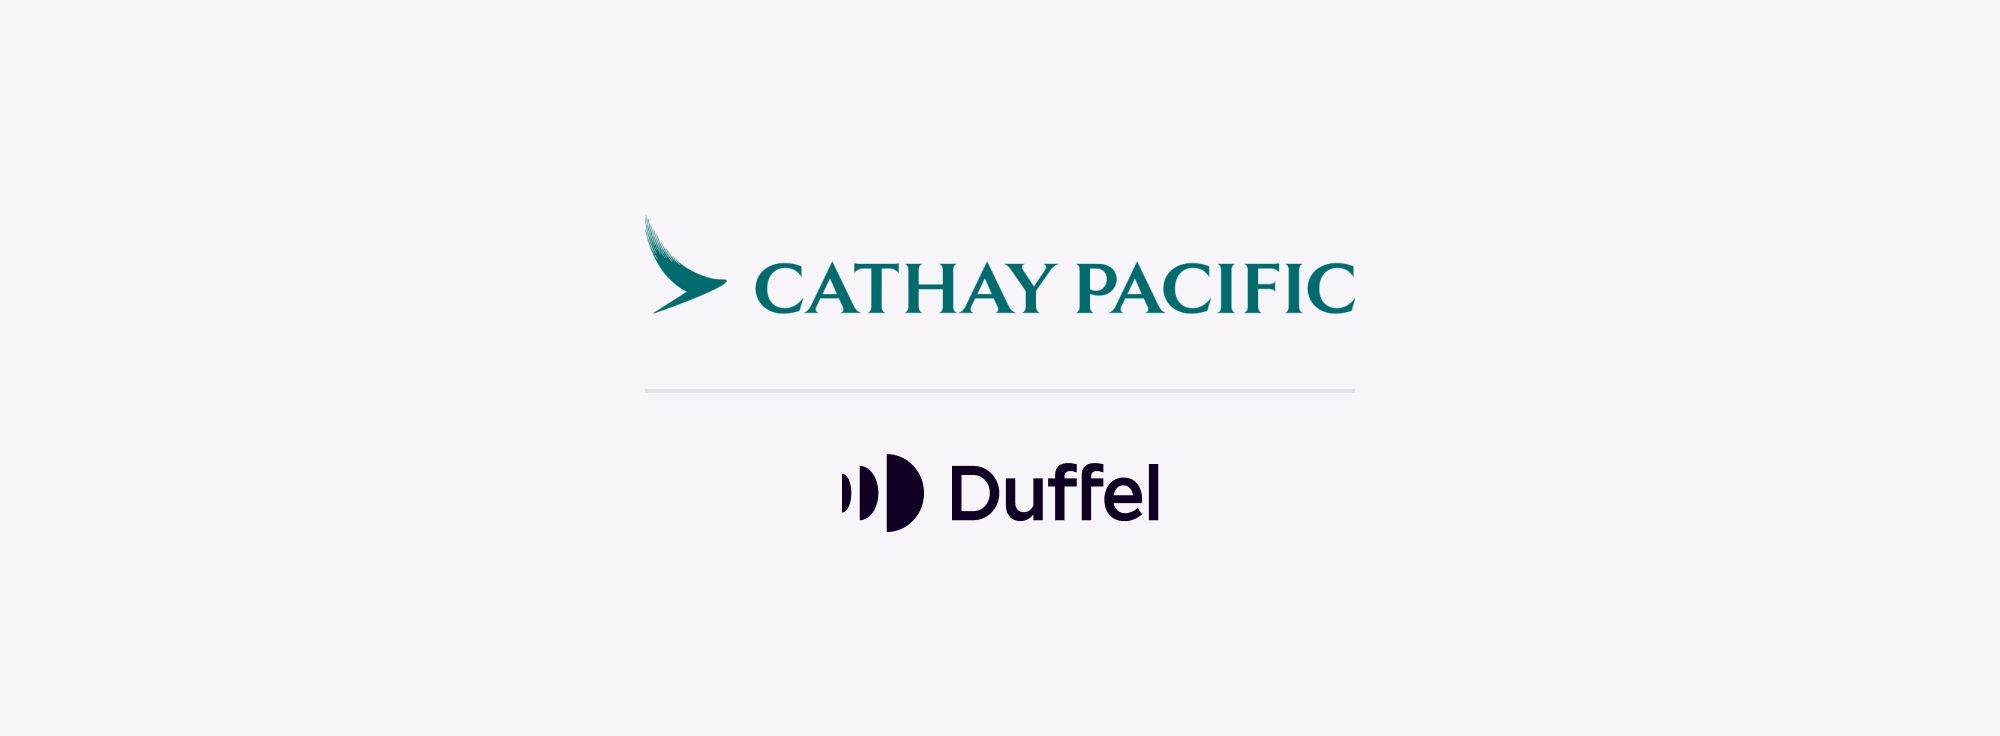 """Taking off with Duffel: our """"incredibly fast"""" integration with Cathay Pacific"""